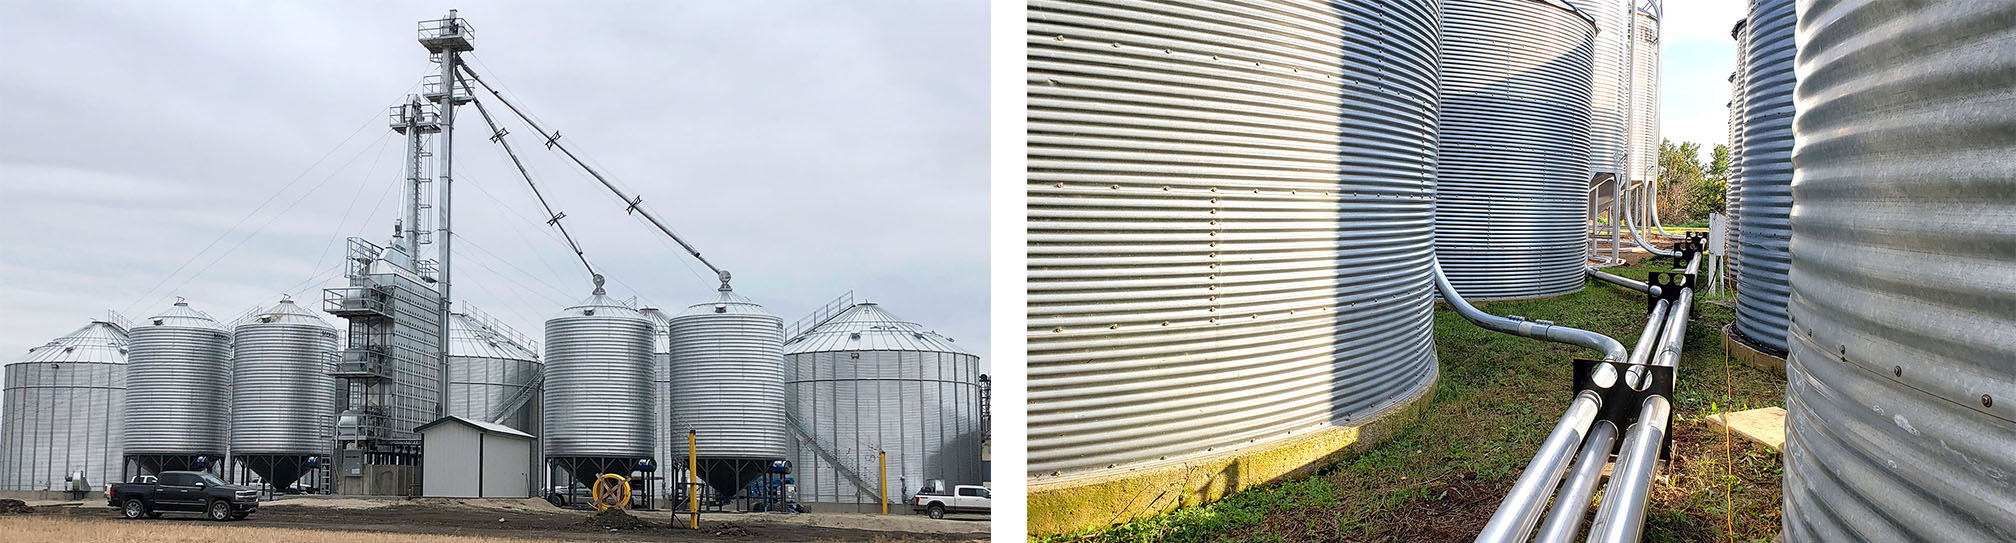 Bin Site with NECO Grain Dryer & Bucket Elevators / Walinga Pipe, Distributor